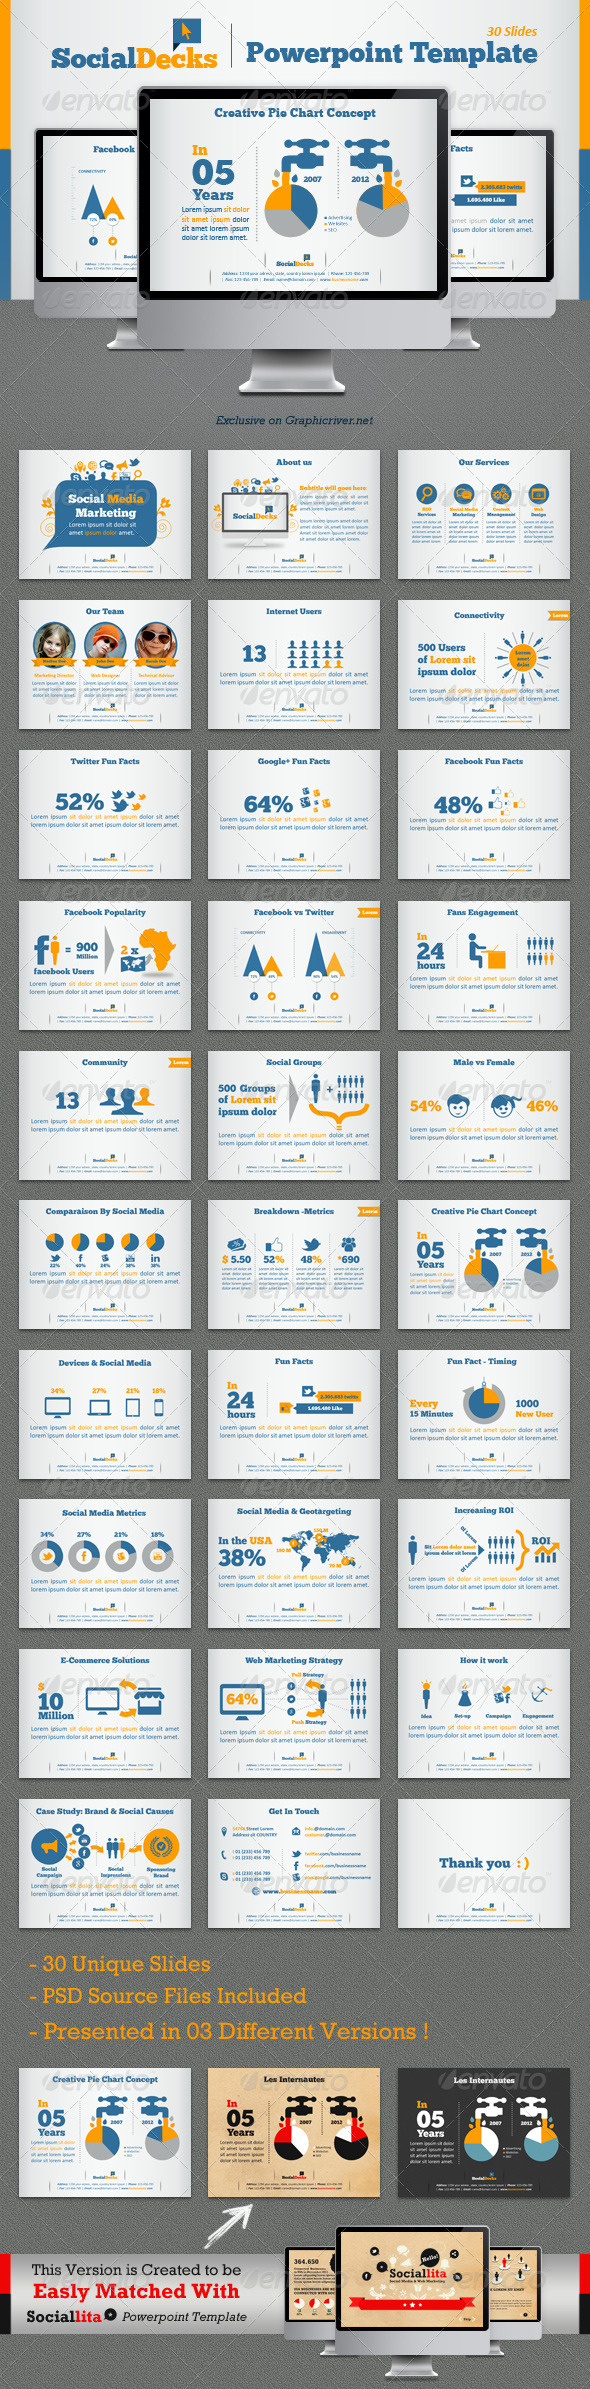 Socialdecks powerpoint template creative powerpoint template socialdecks powerpoint template alramifo Image collections